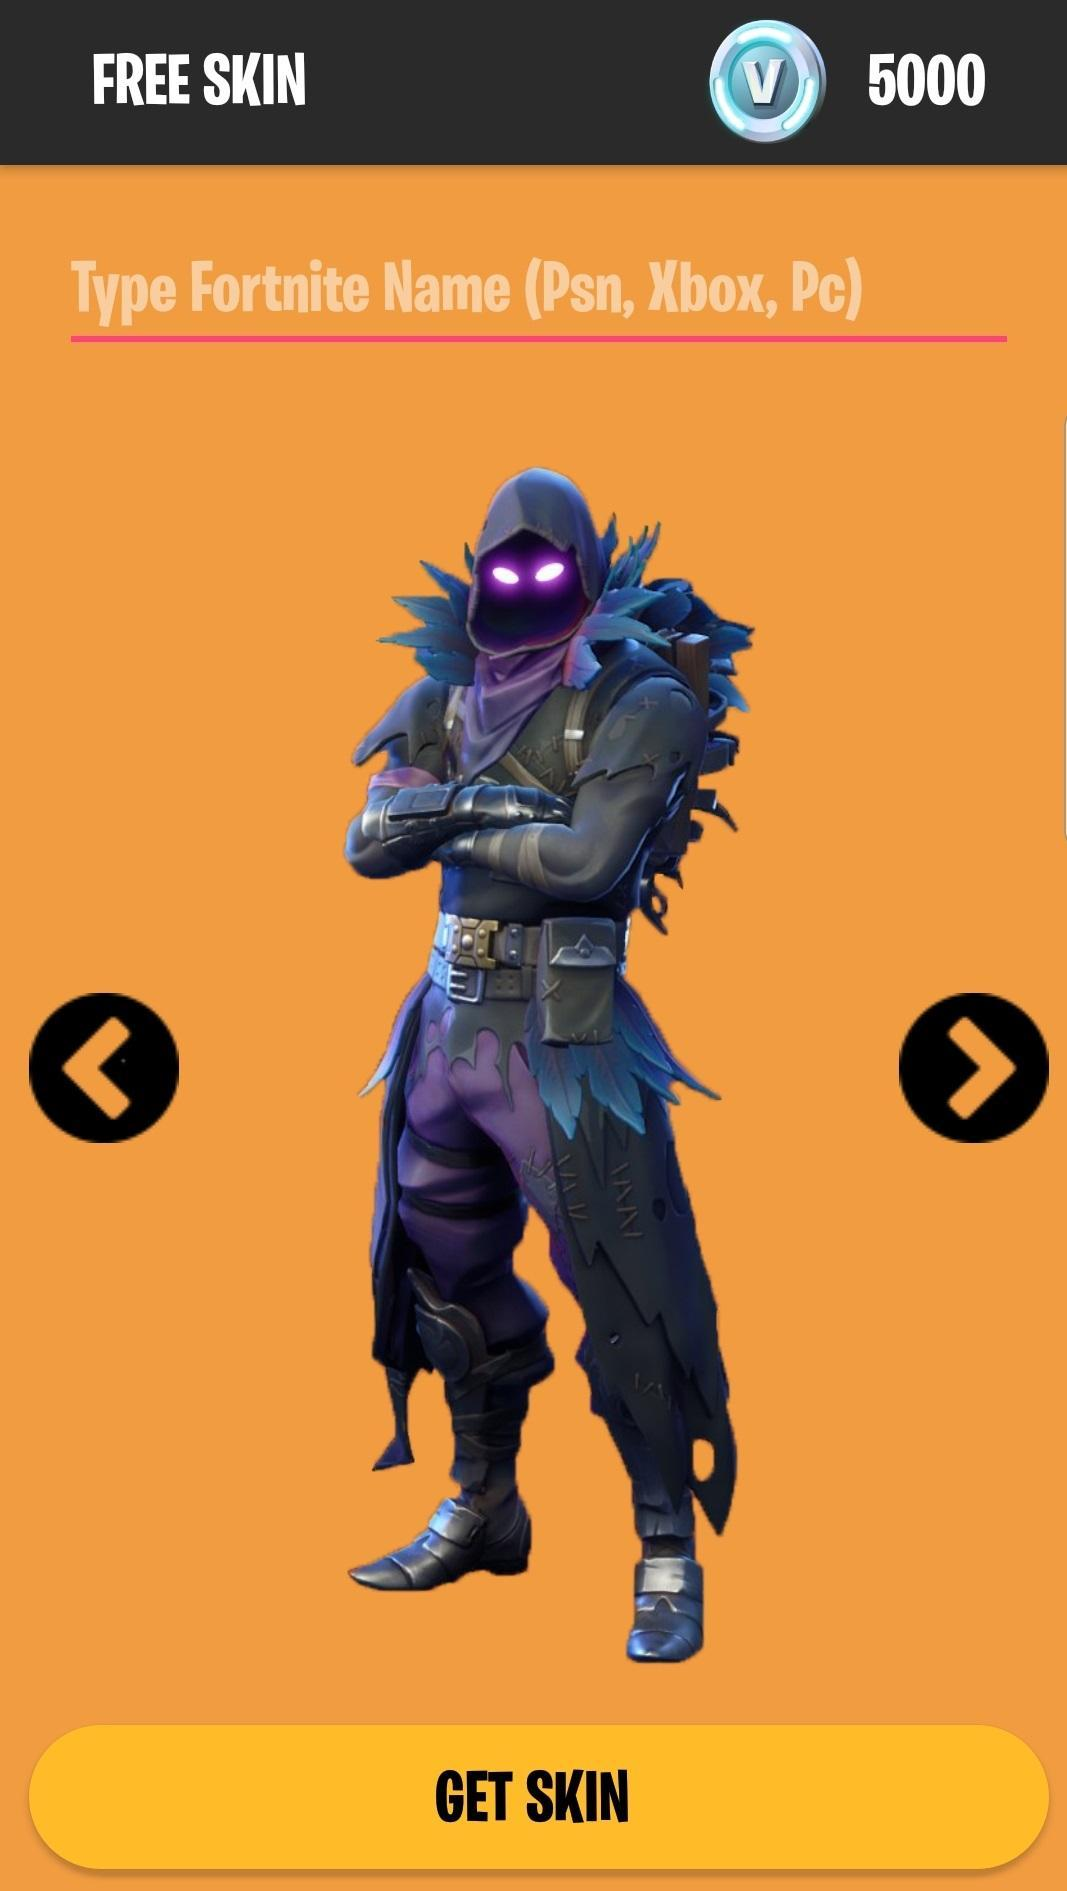 Fortnite Skins Free For Android Apk Download